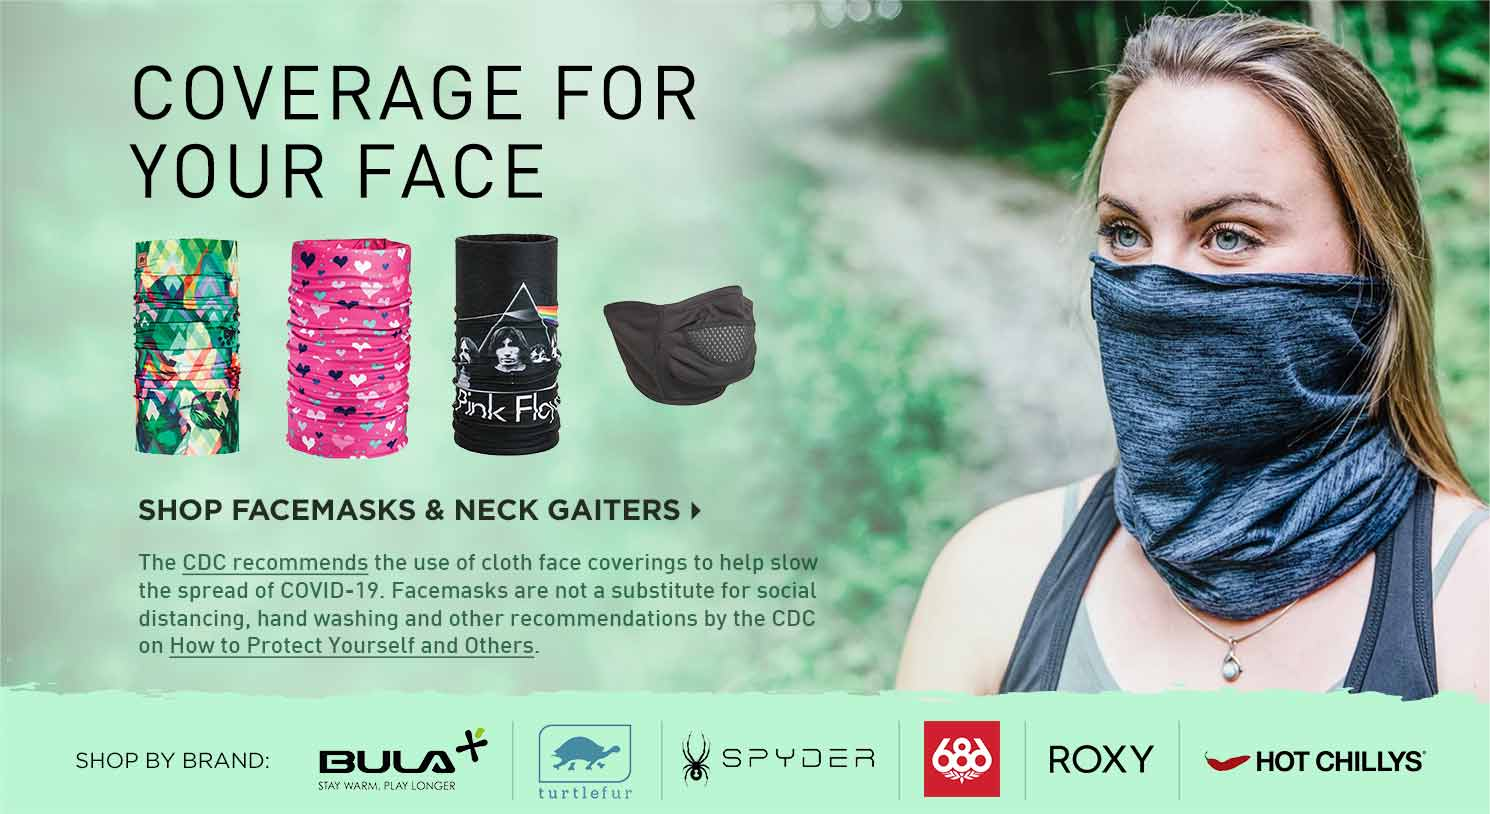 Coverage for Your Face - Shop Facemasks and Neck Gaiters